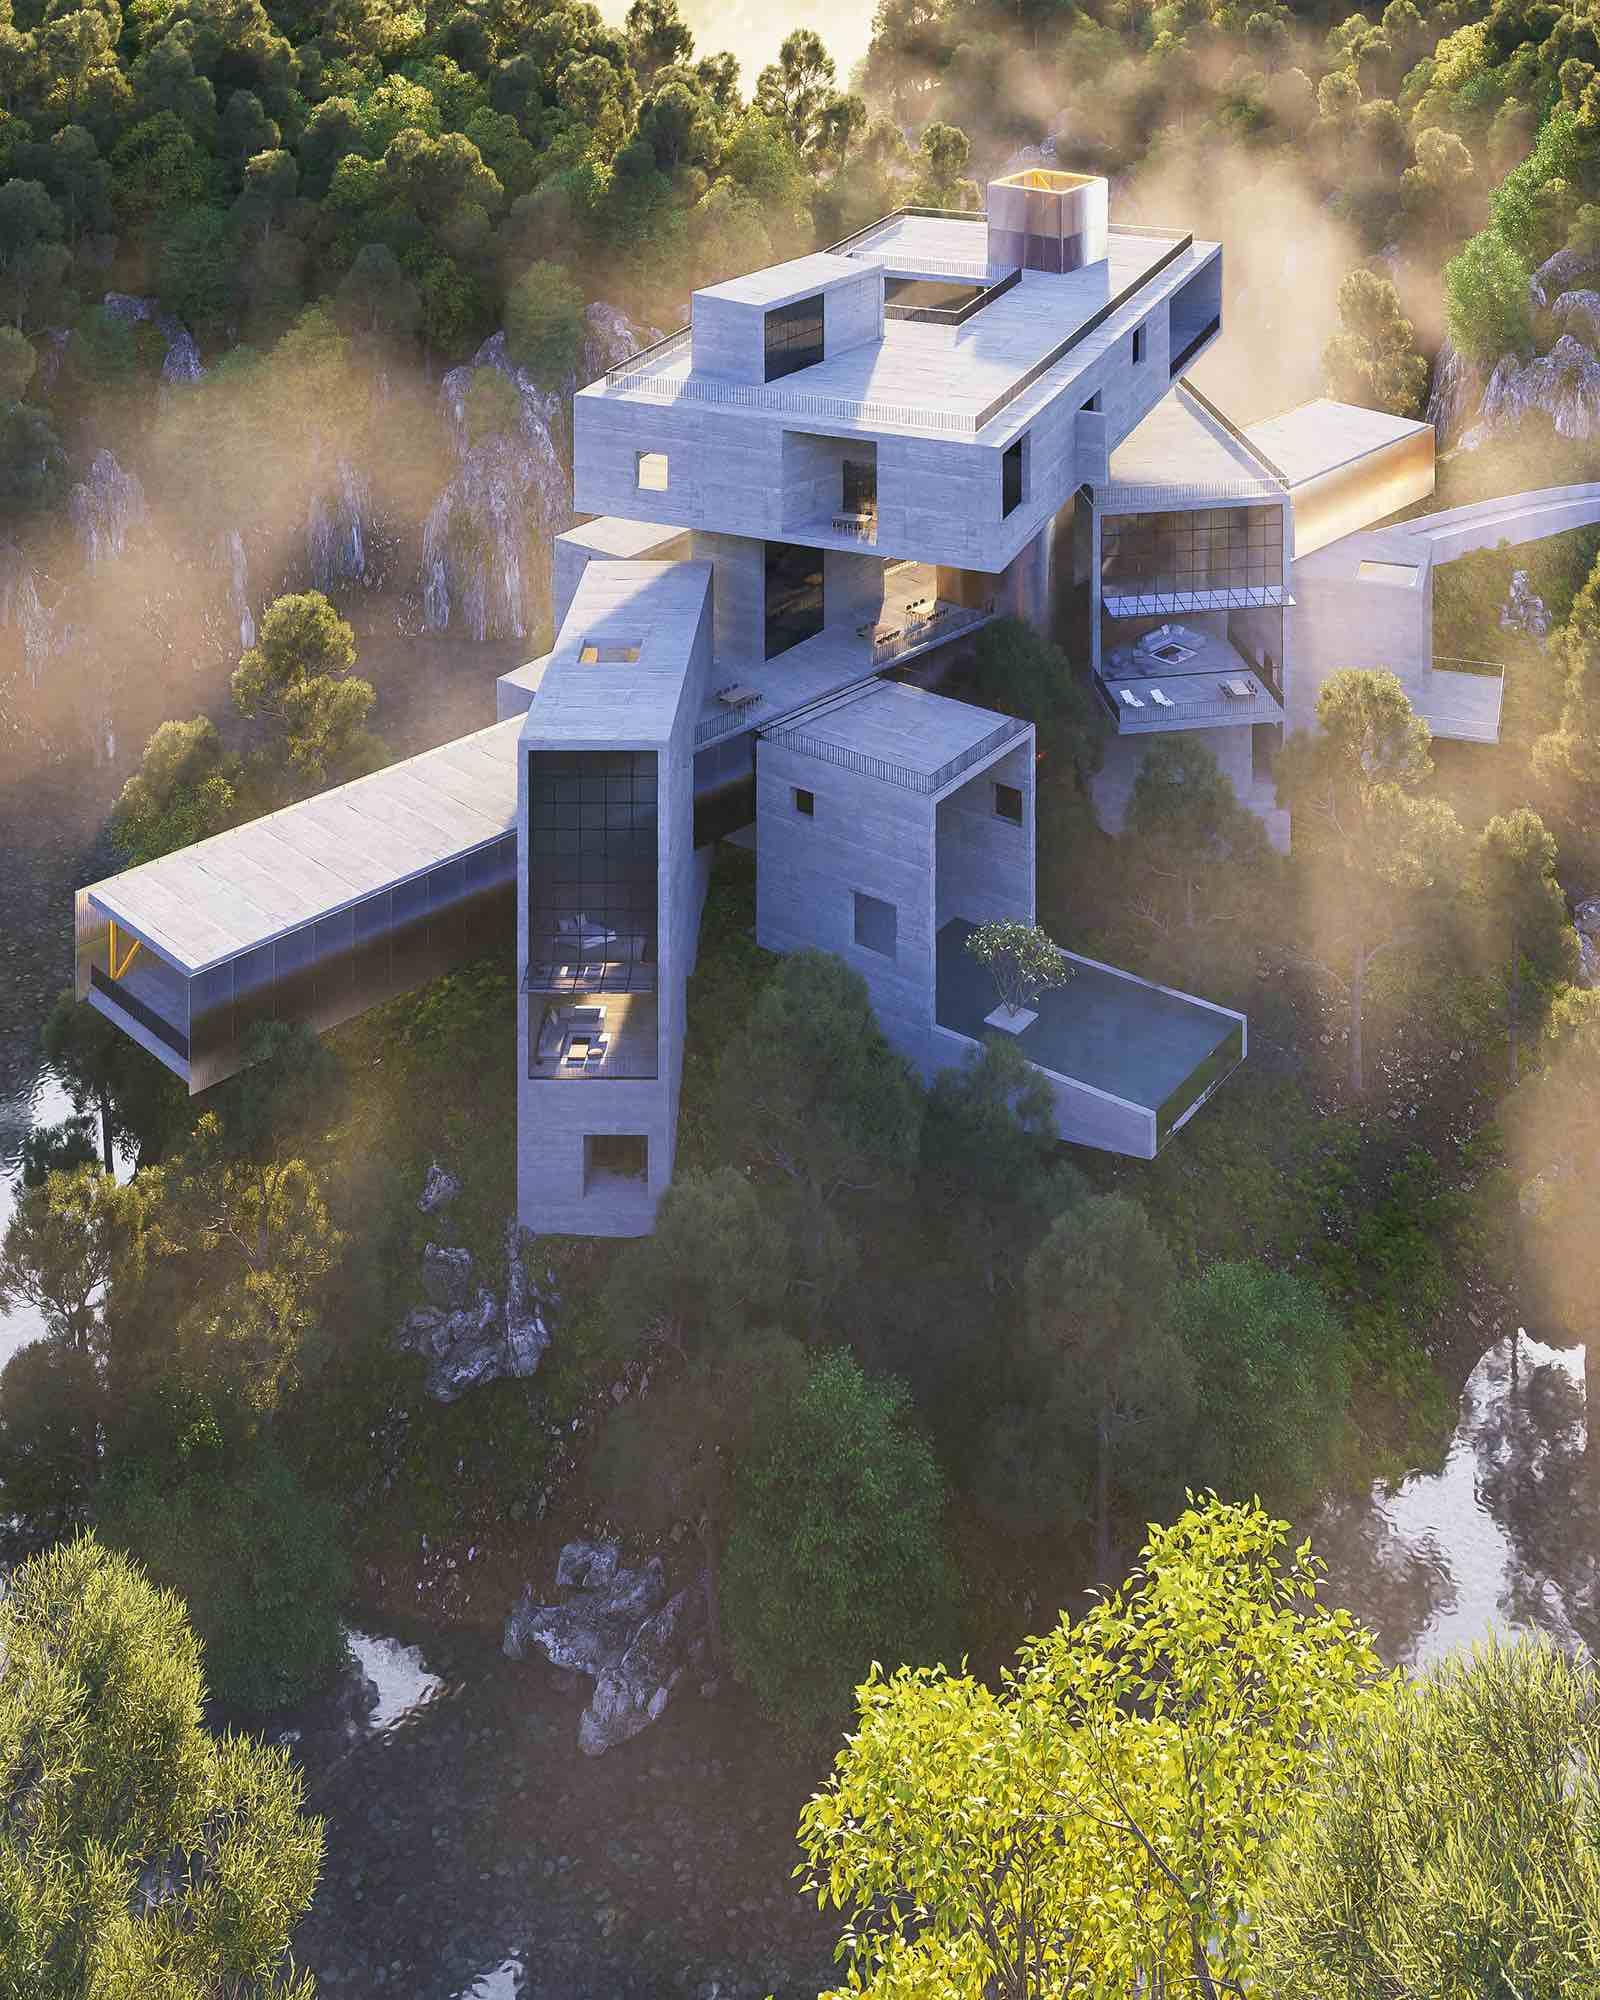 a concrete hotel in the middle of nature inspired by Elt castle in Germany